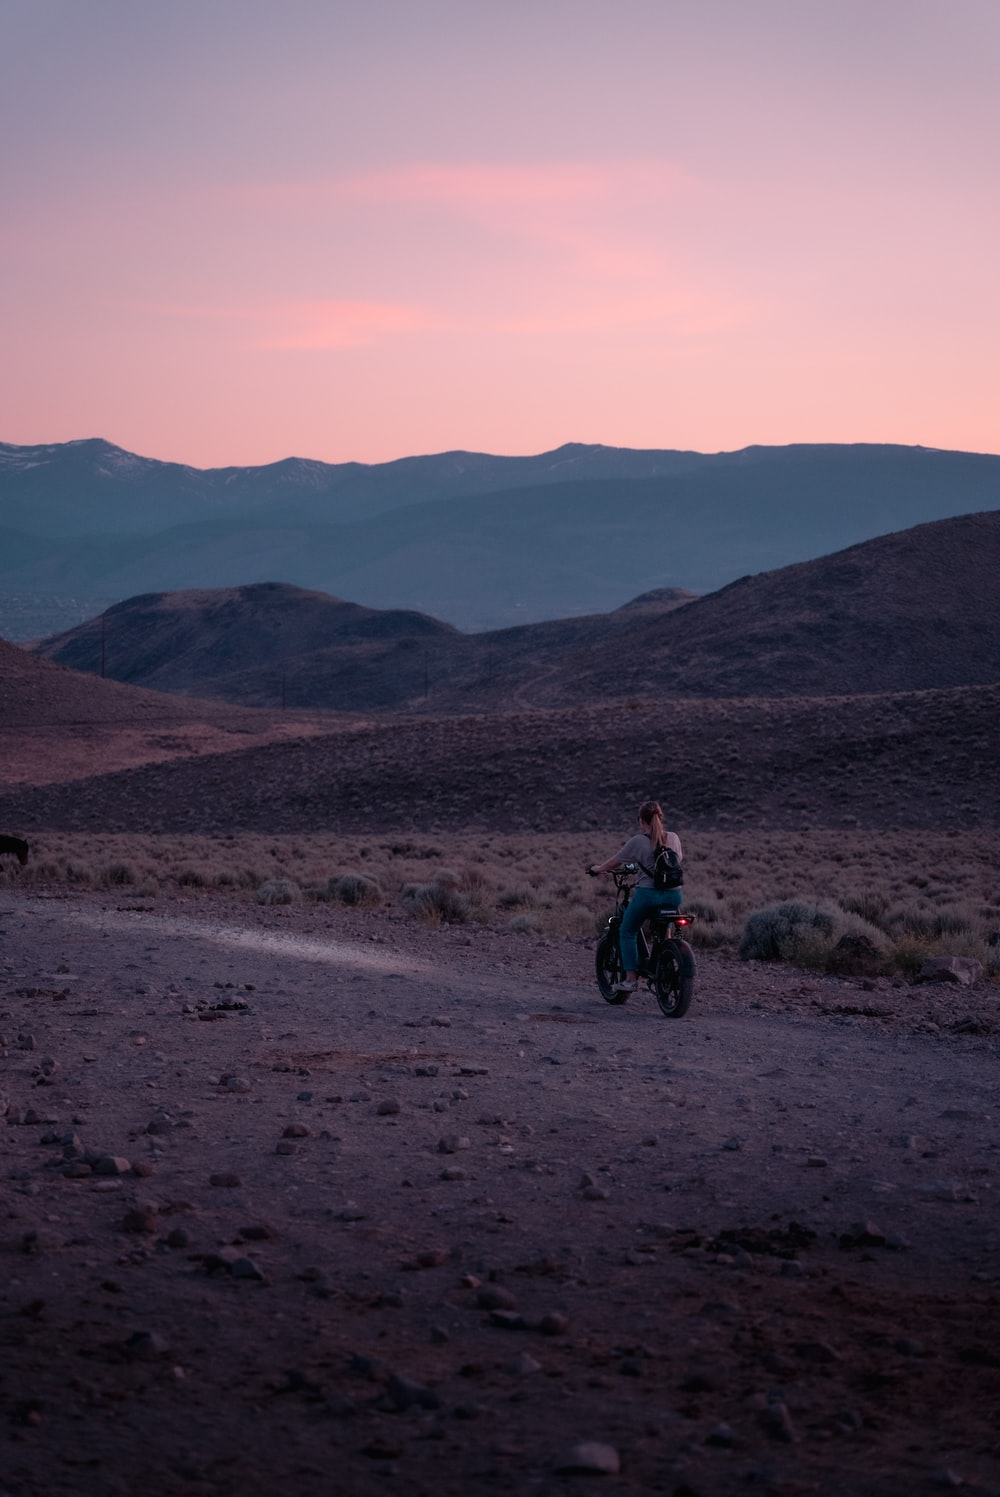 man in red jacket riding motorcycle on dirt road during daytime